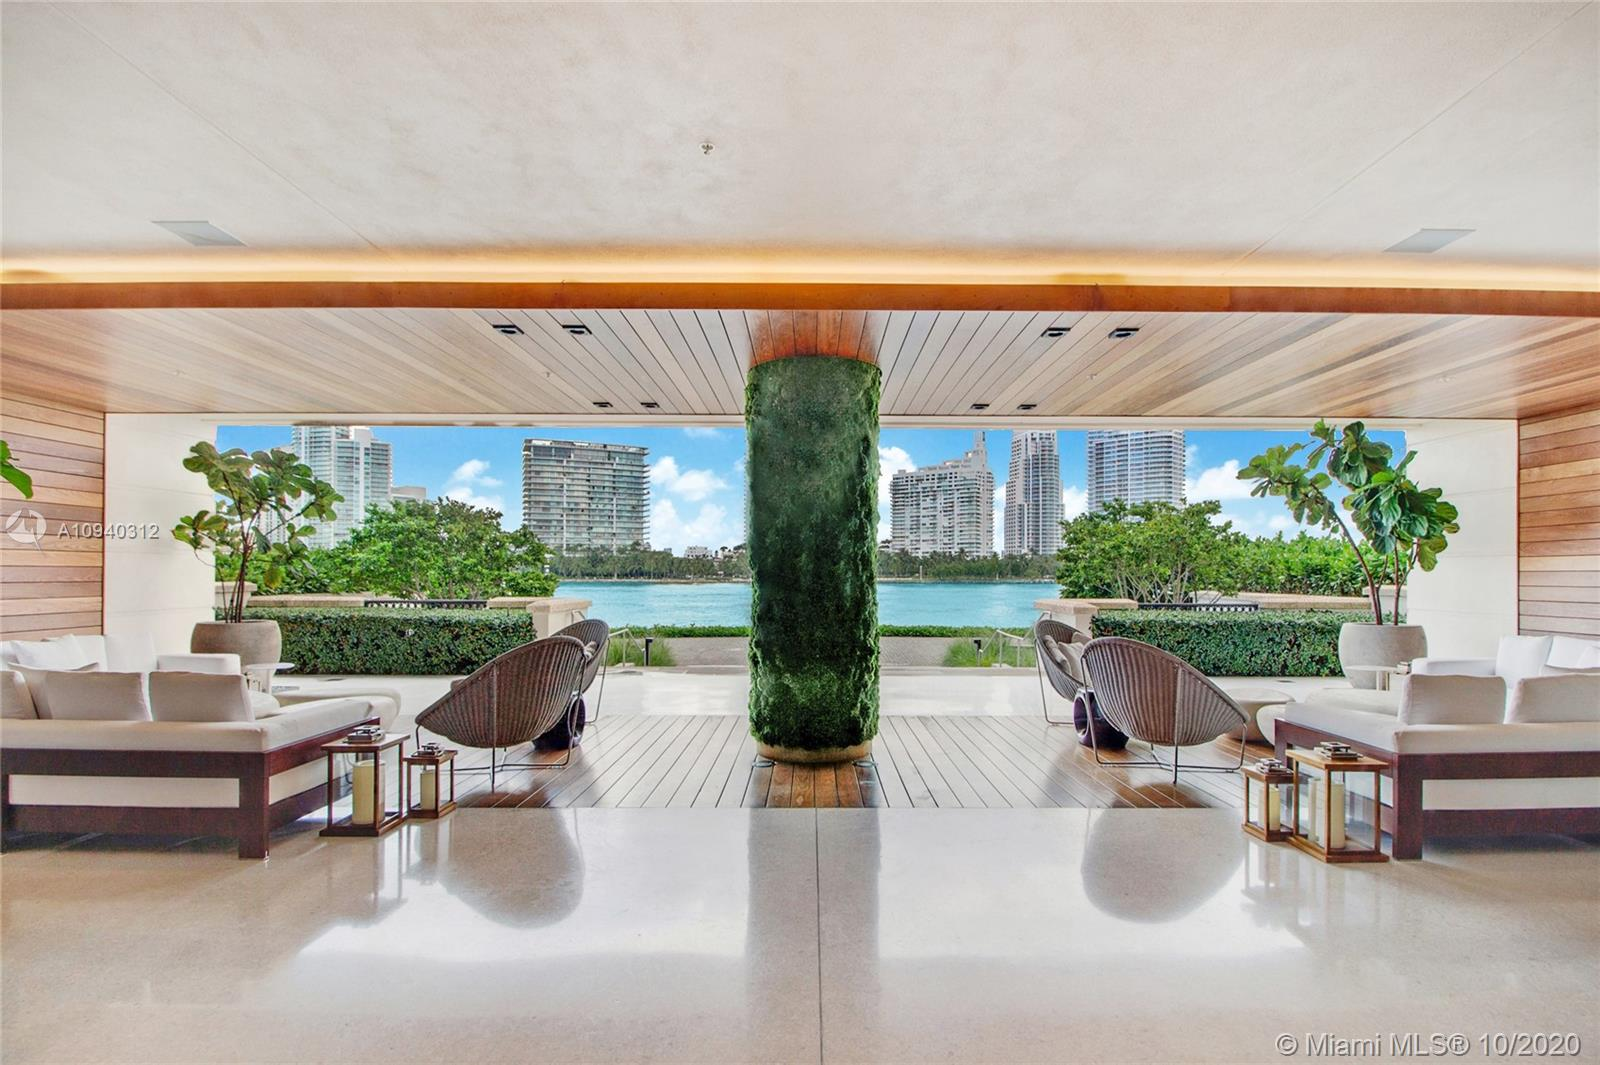 7085  Fisher Island Dr #7085 For Sale A10940312, FL